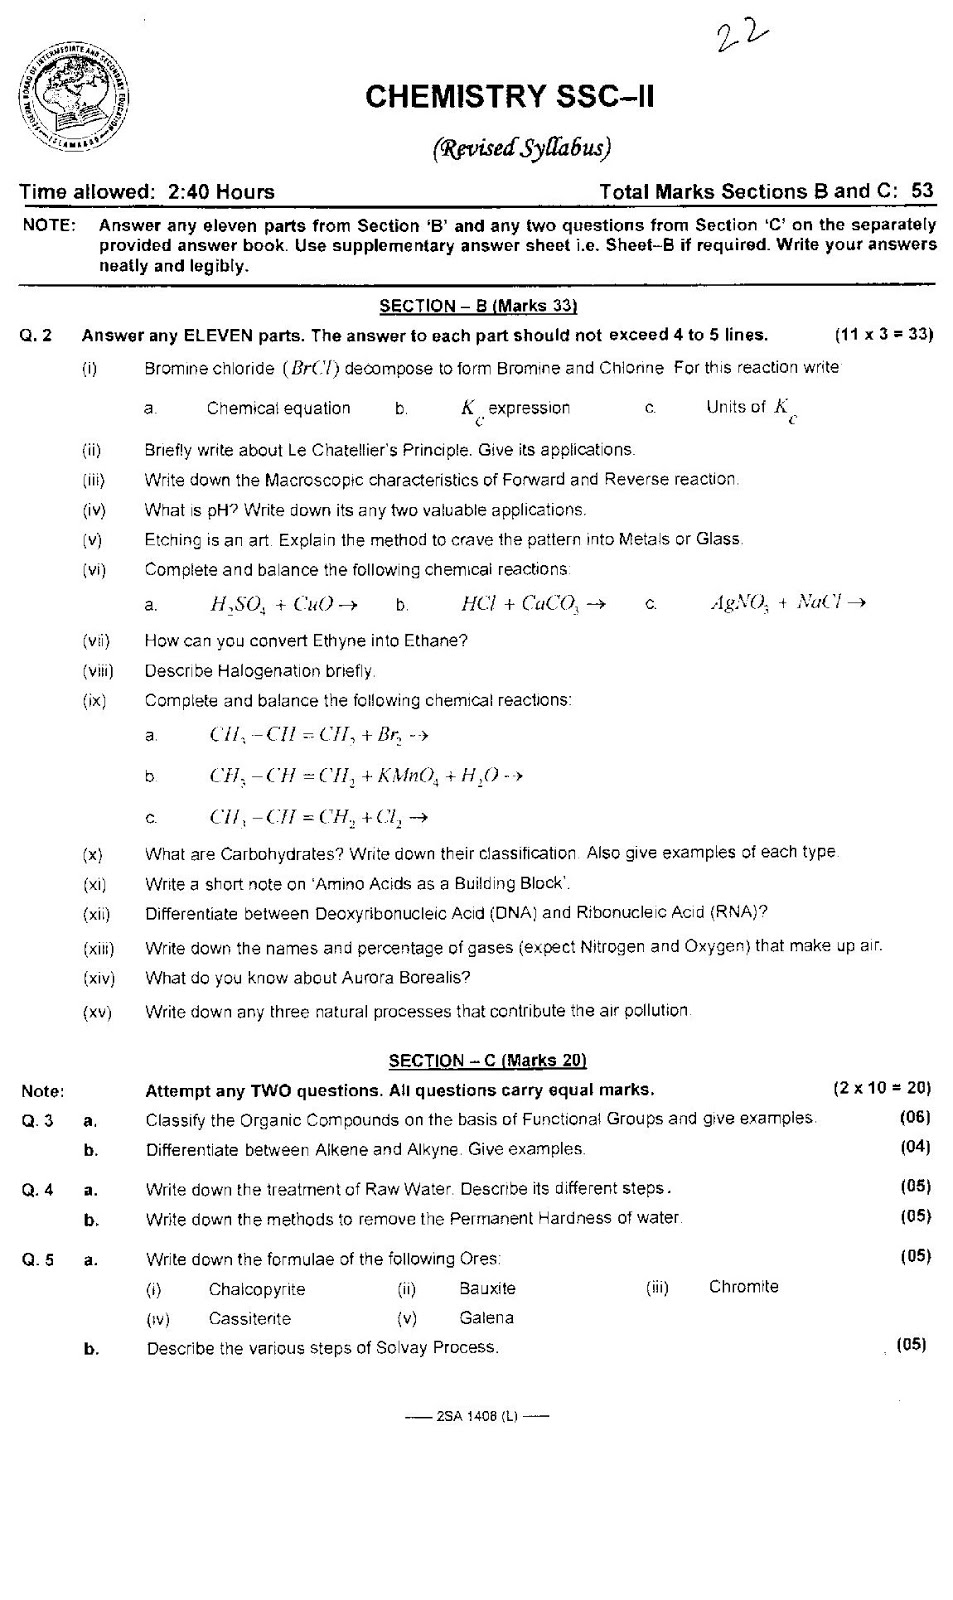 7 most common problems faced by fbise oversea students top study this is a paper of chemistry ssc ii for pakistani students 2014 malvernweather Gallery